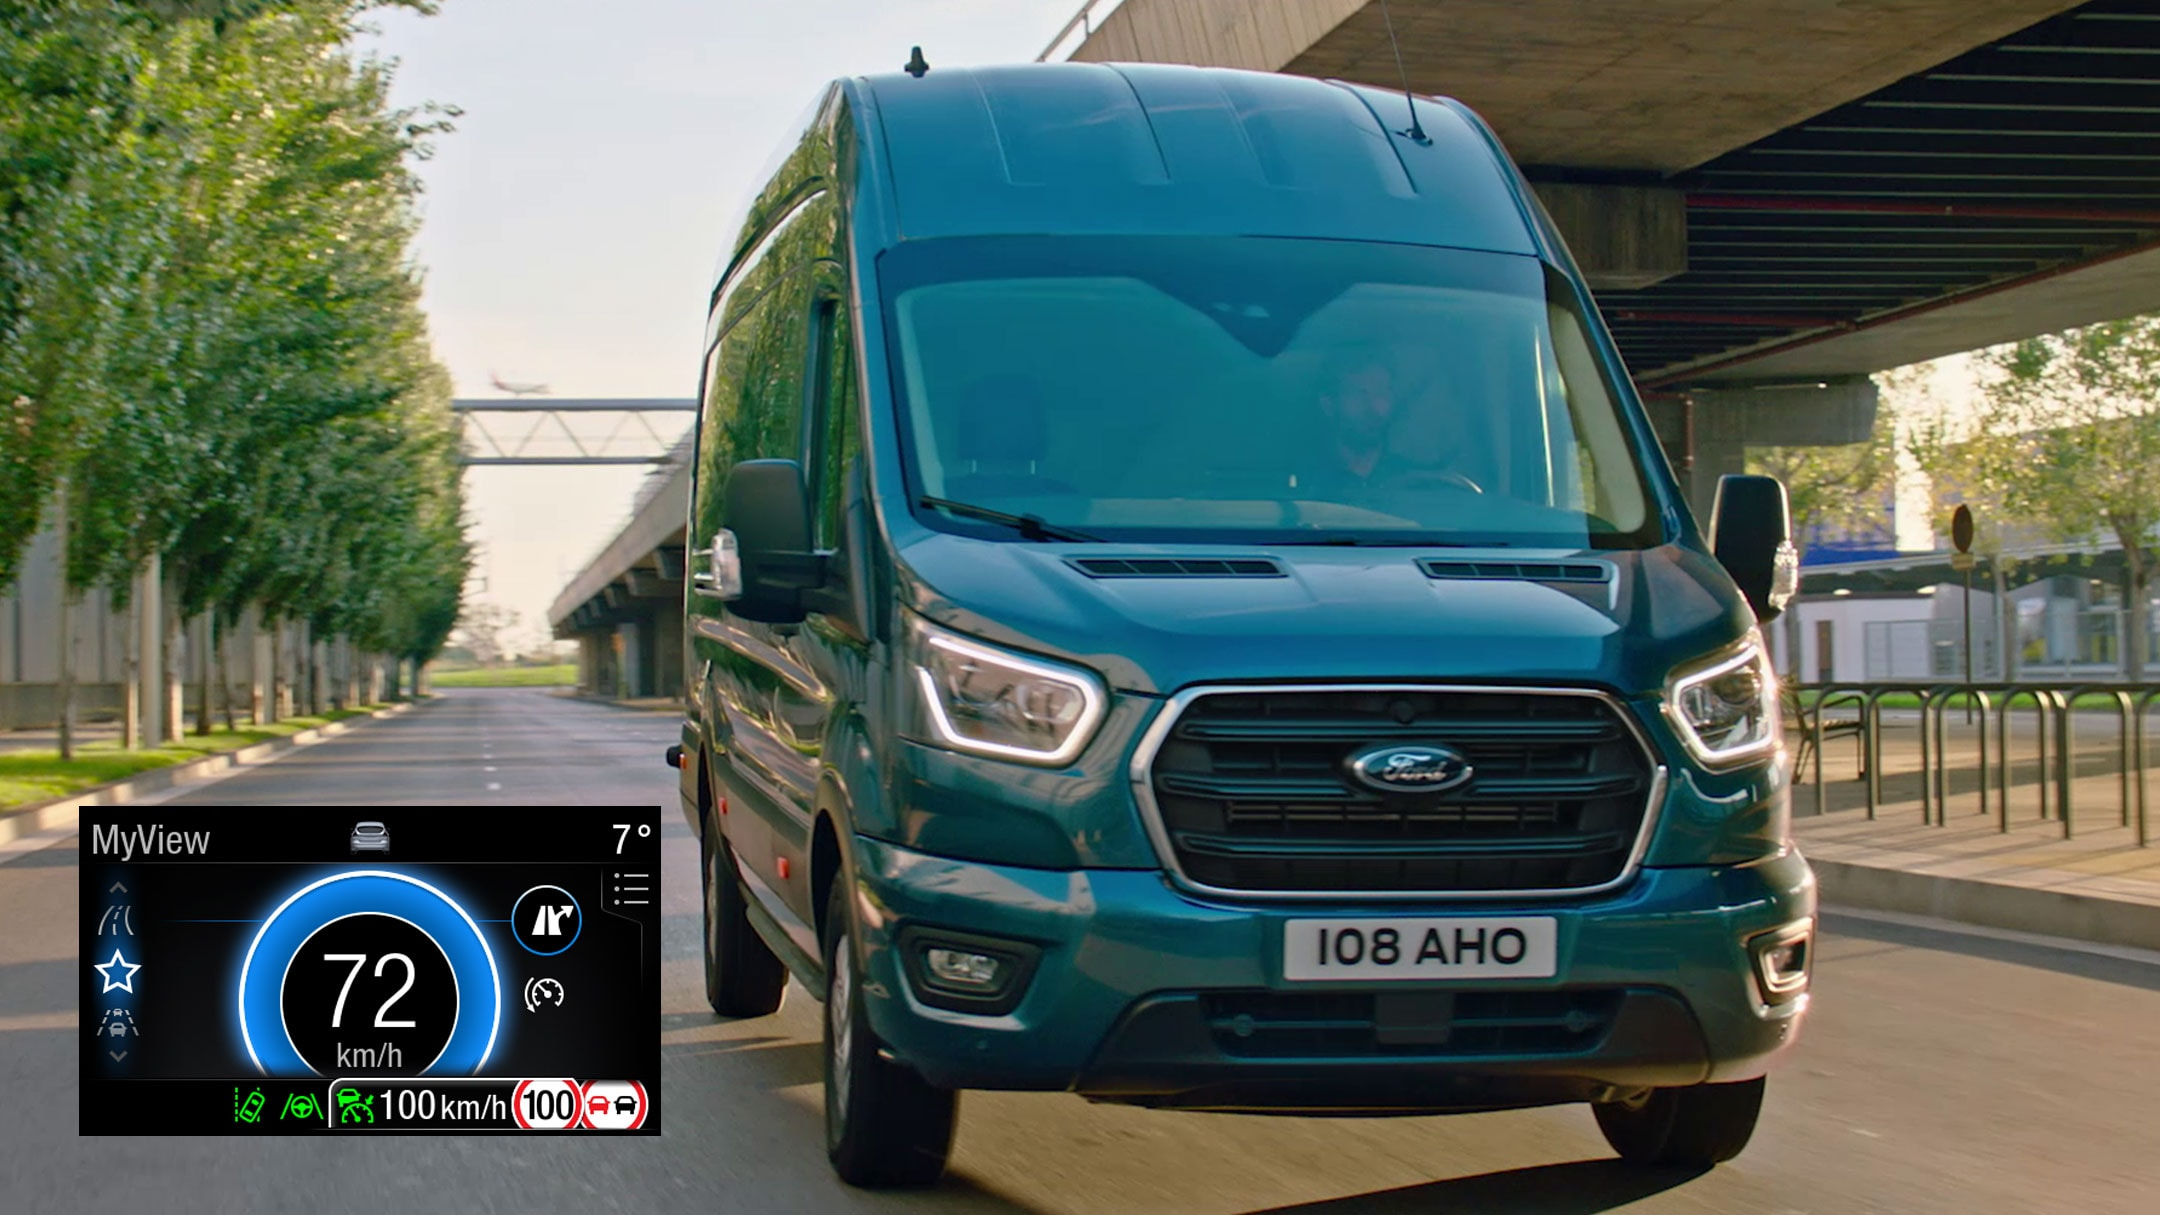 Ford Transit Van driving on motorway front view with Eco Mode dial in detail